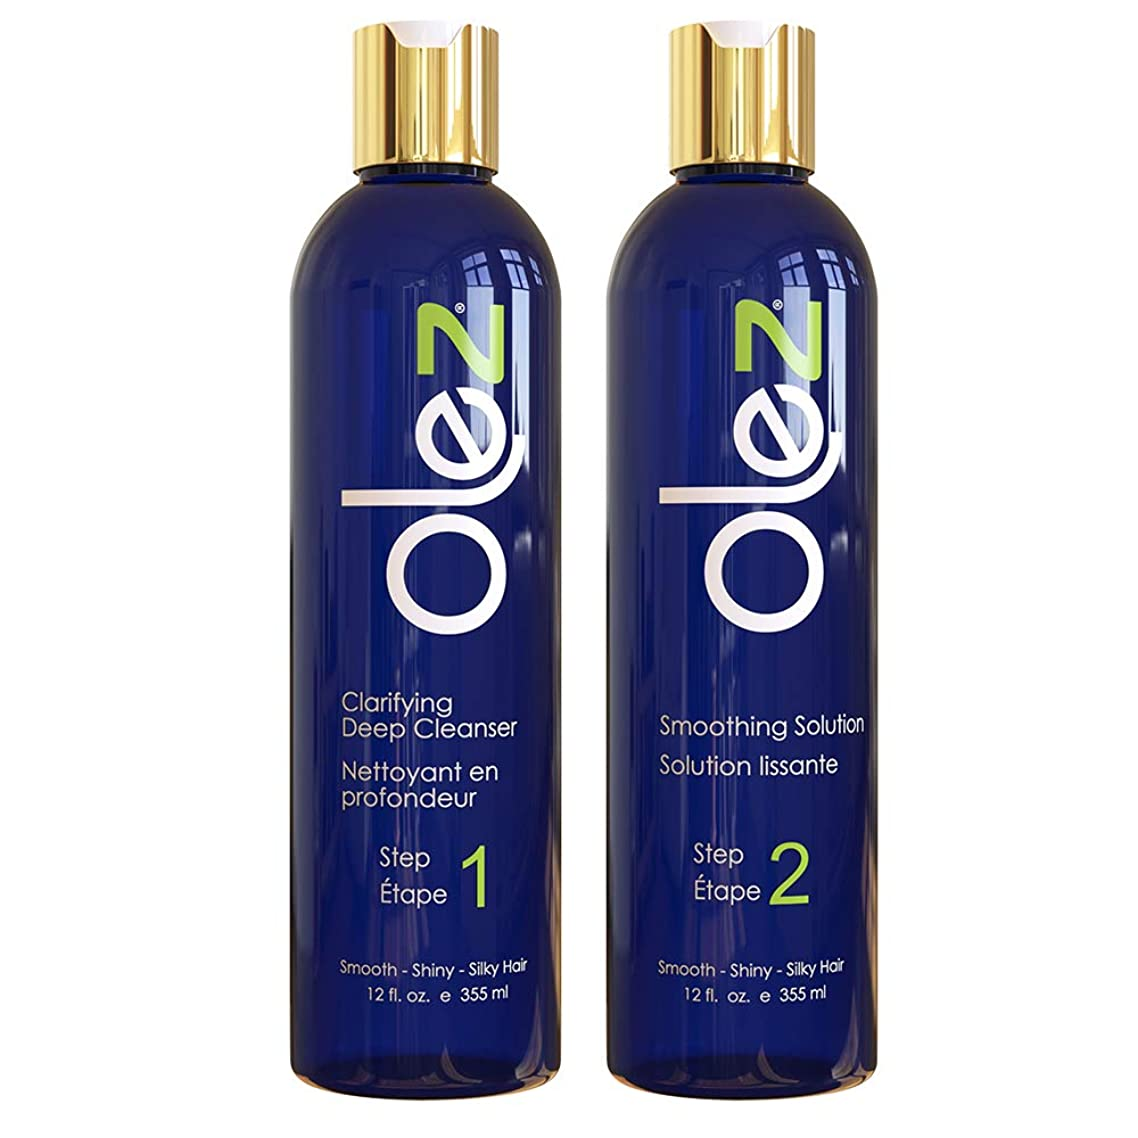 OLEZ Smoothing Keratin Hair Treatment Kit (8 Oz + Spray) 2-Step Formaldehyde Free Smoothing Hair Cleanser - Helps Keep Smooth, Shiny, Silky Hair For All Hair Types